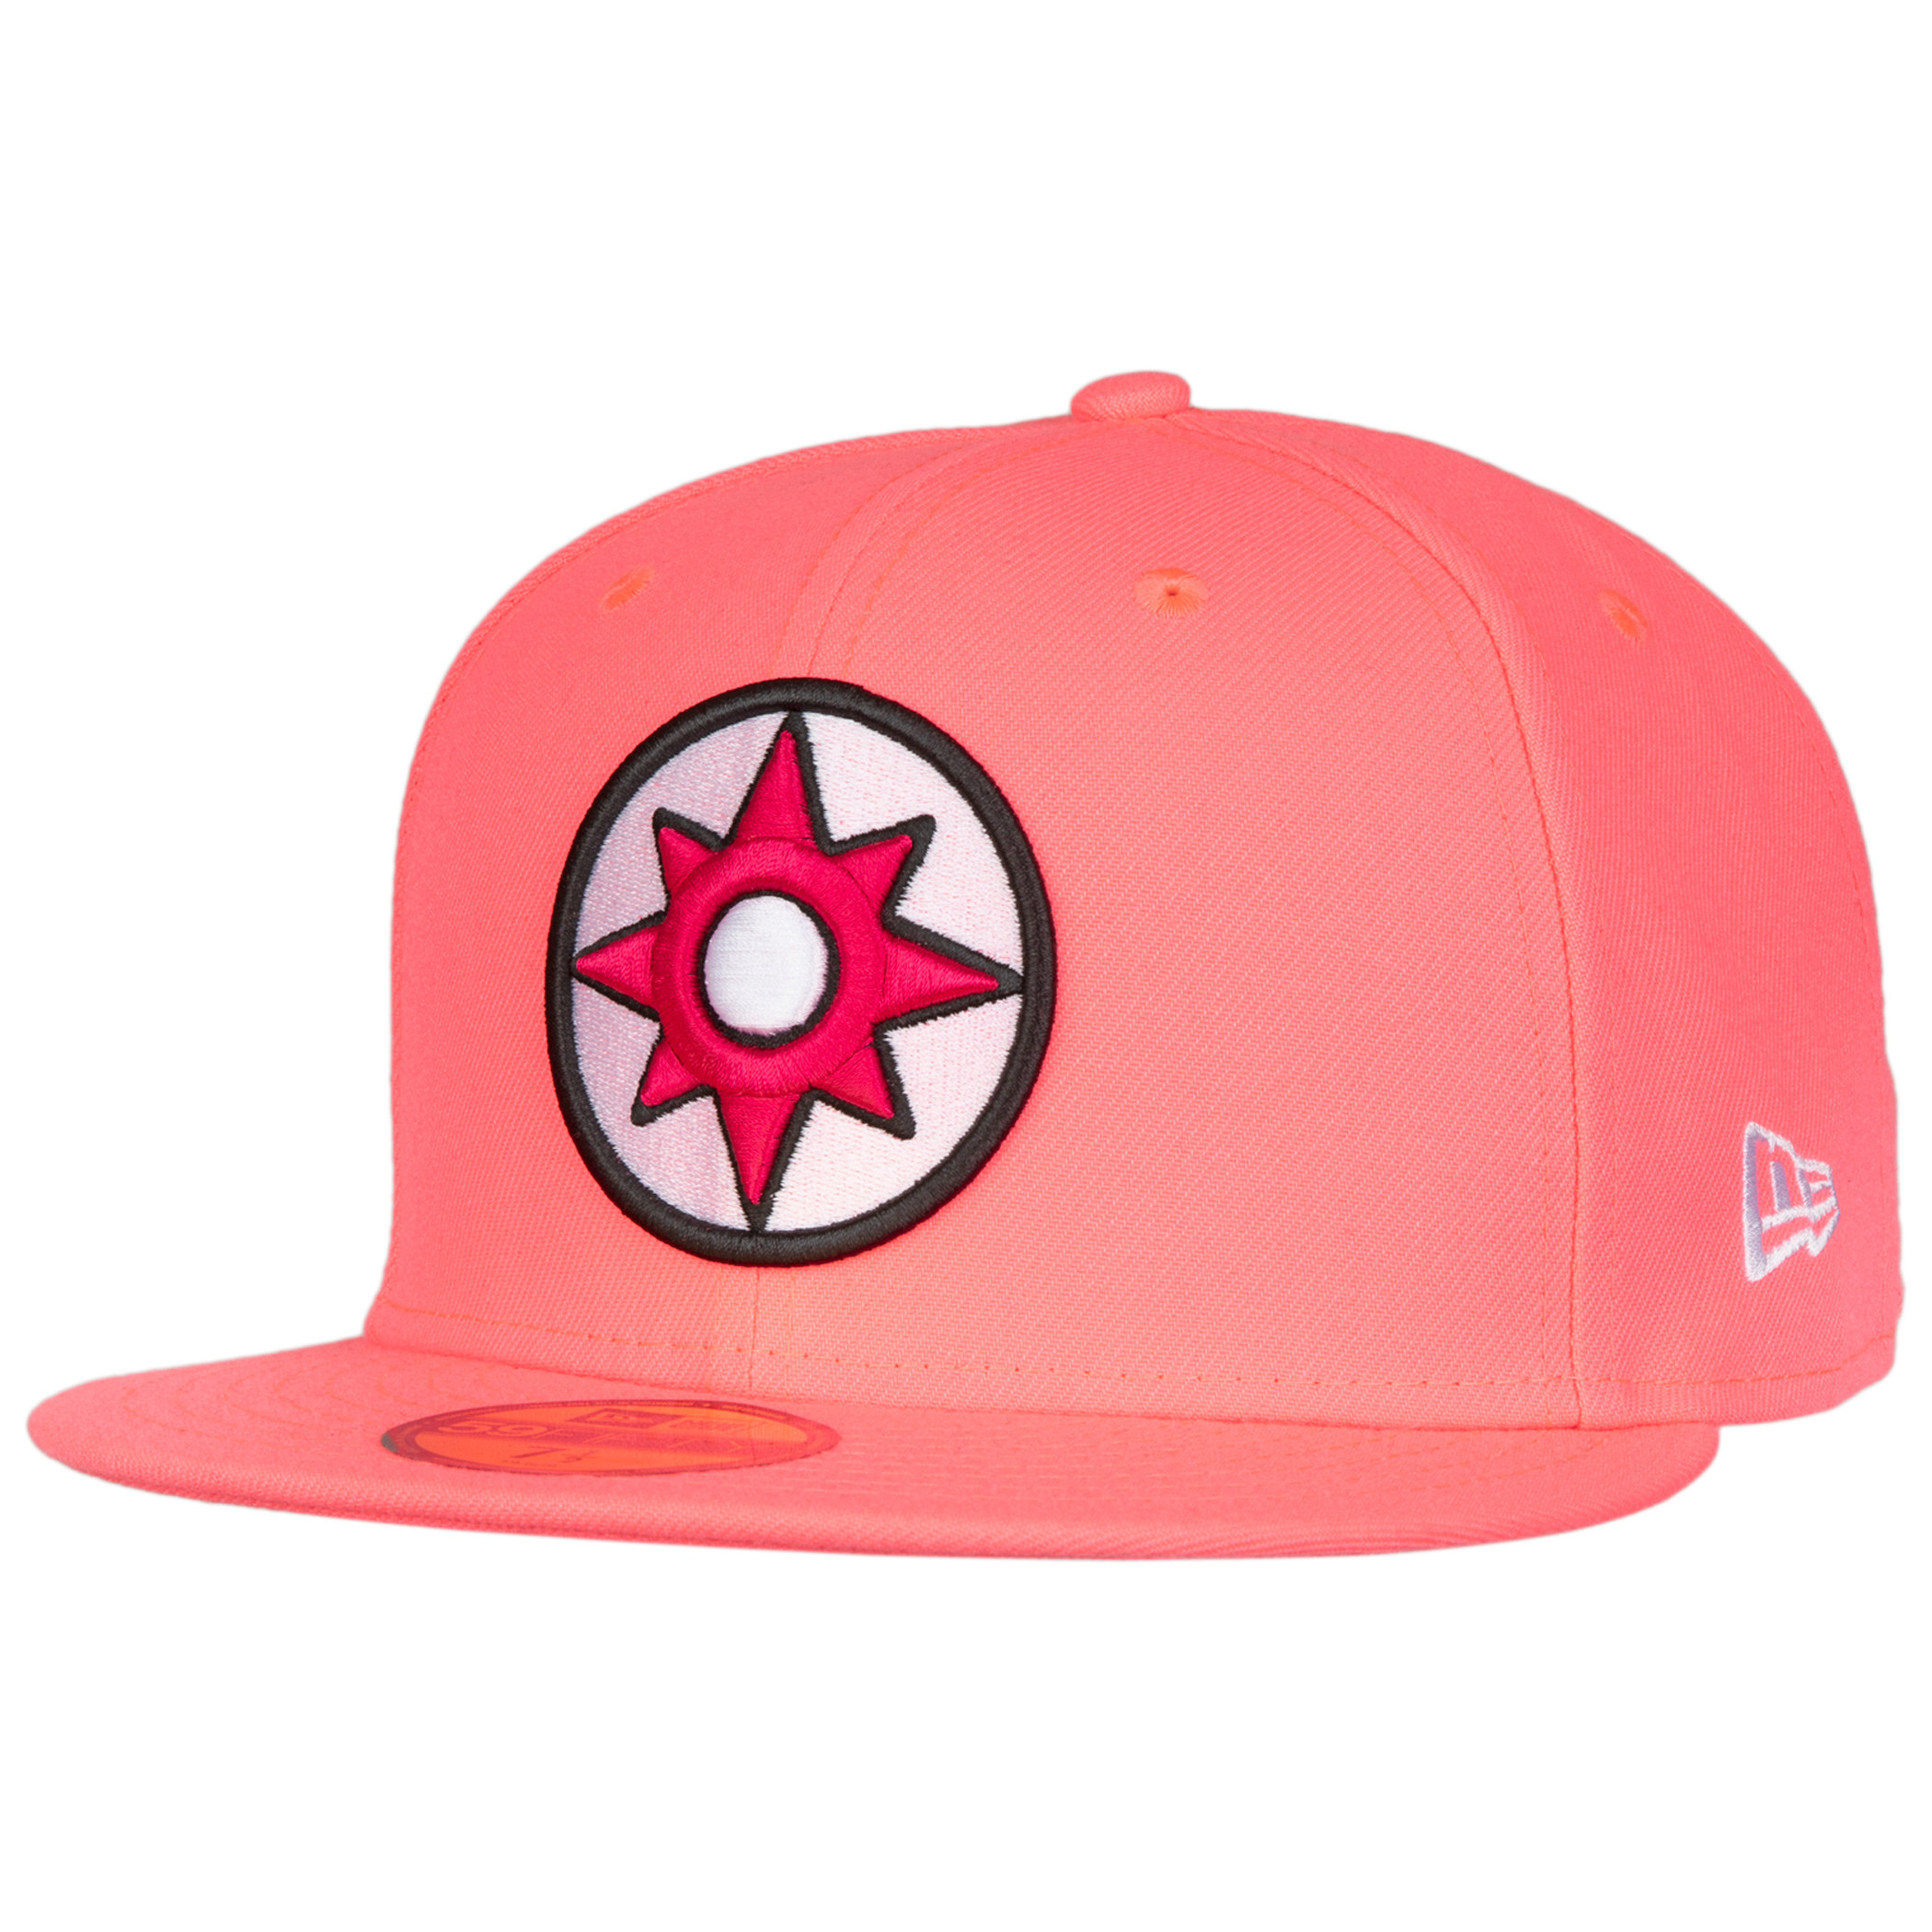 Pink Lantern Color Block New Era 59Fifty Fitted Hat